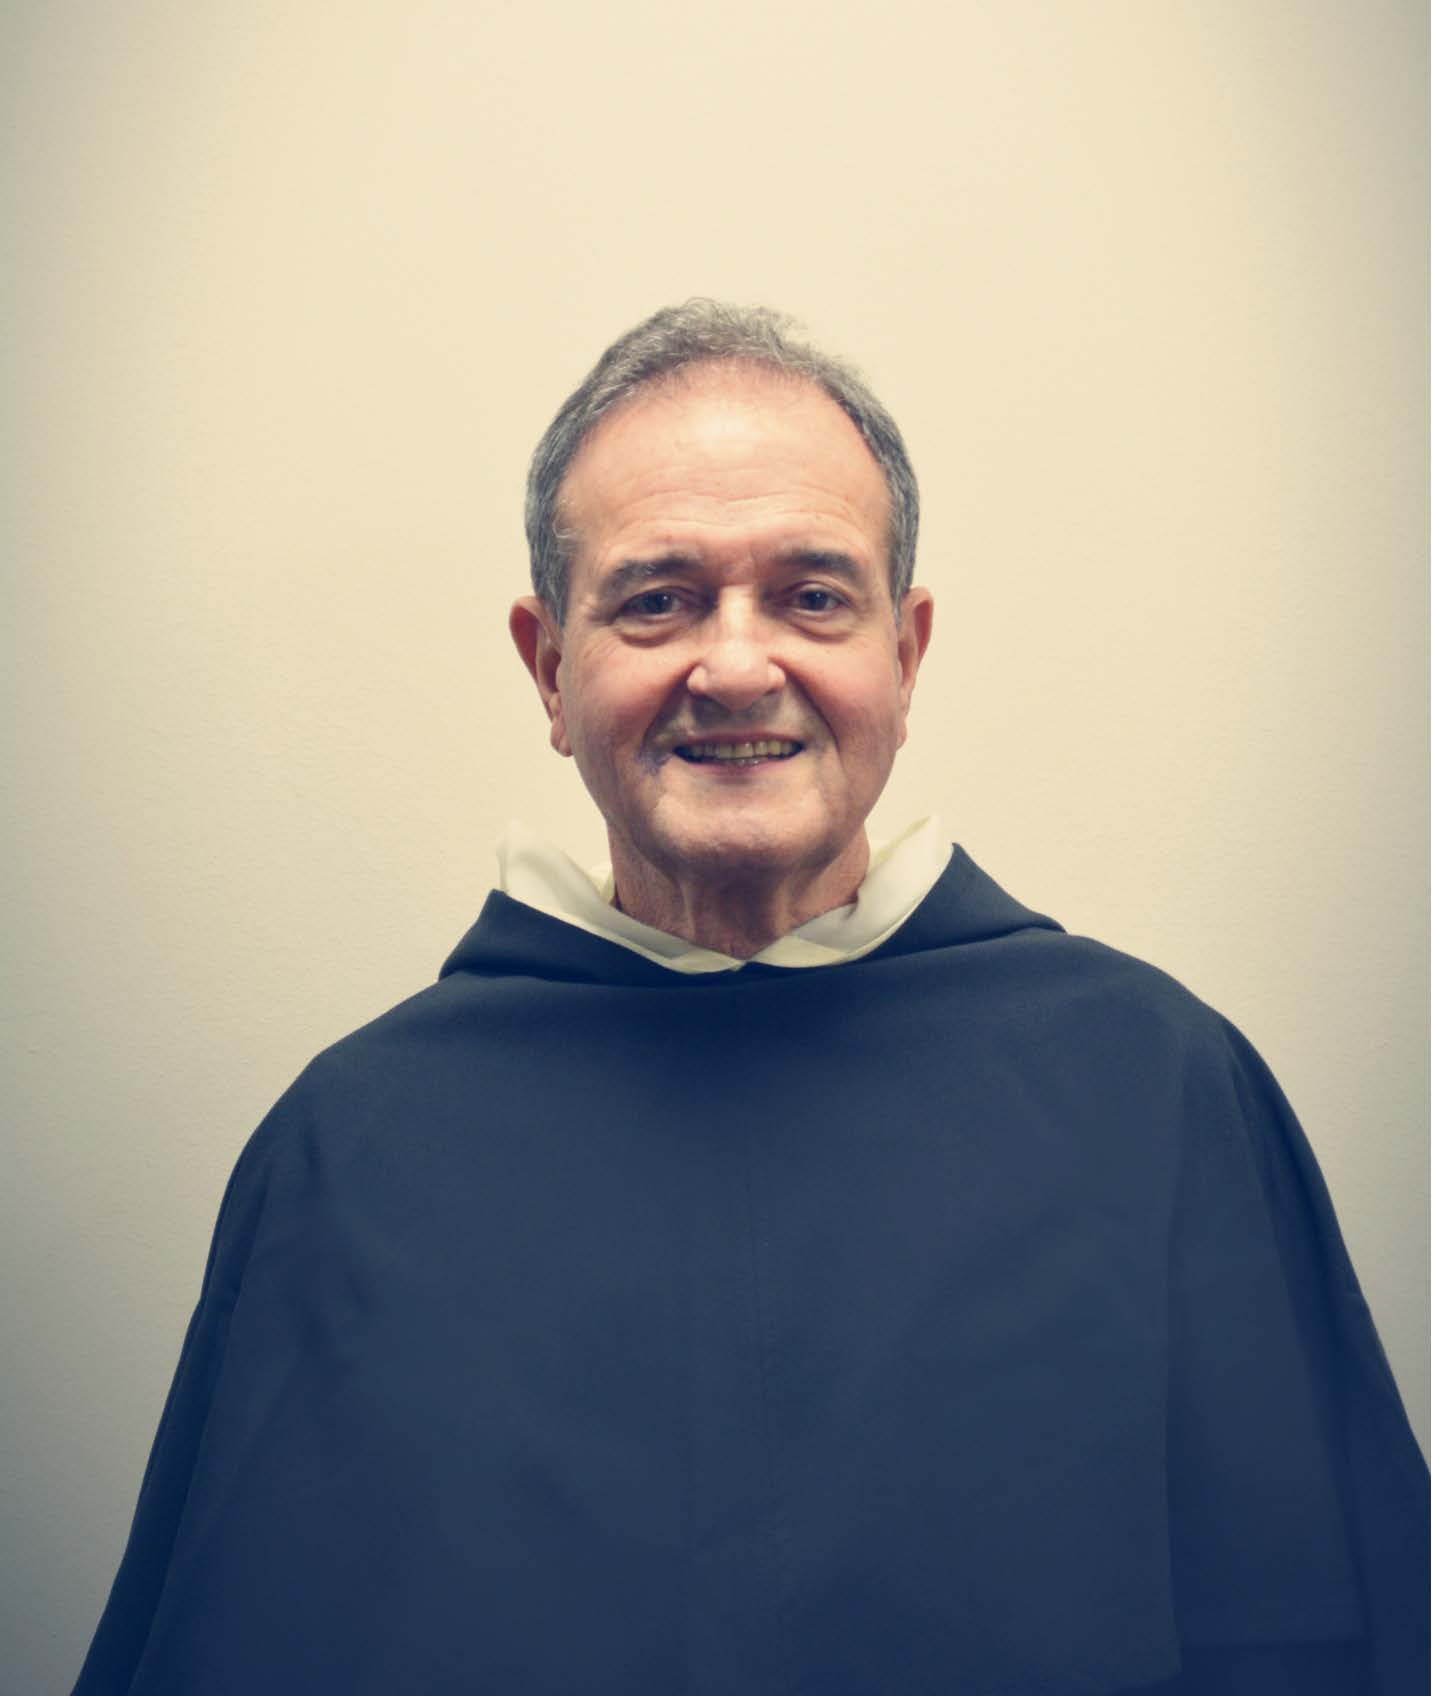 """10:00 am - 11:30 am  """"Hope - Becoming What We Pray:  Vincentian Hope in Word & Song"""" - Fr. James Marchionda, O.P."""